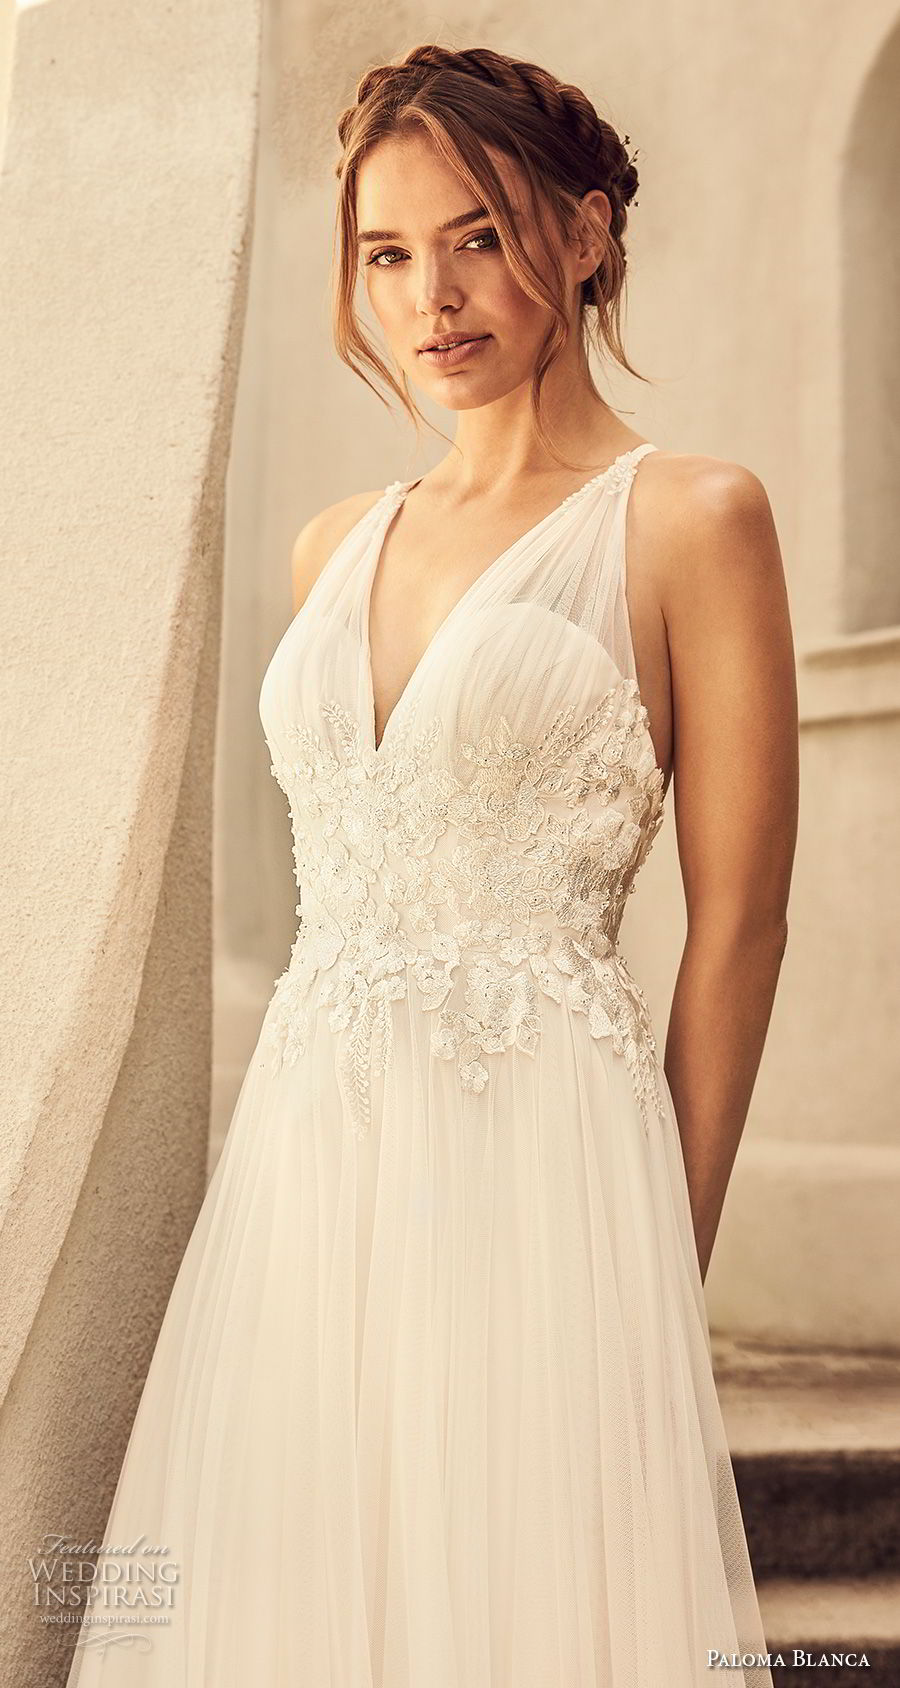 paloma blanca spring 2018 bridal sleeveless v neck heavily embellished bodice romantic soft a  line wedding dress cross strap back sweep train (6) zv